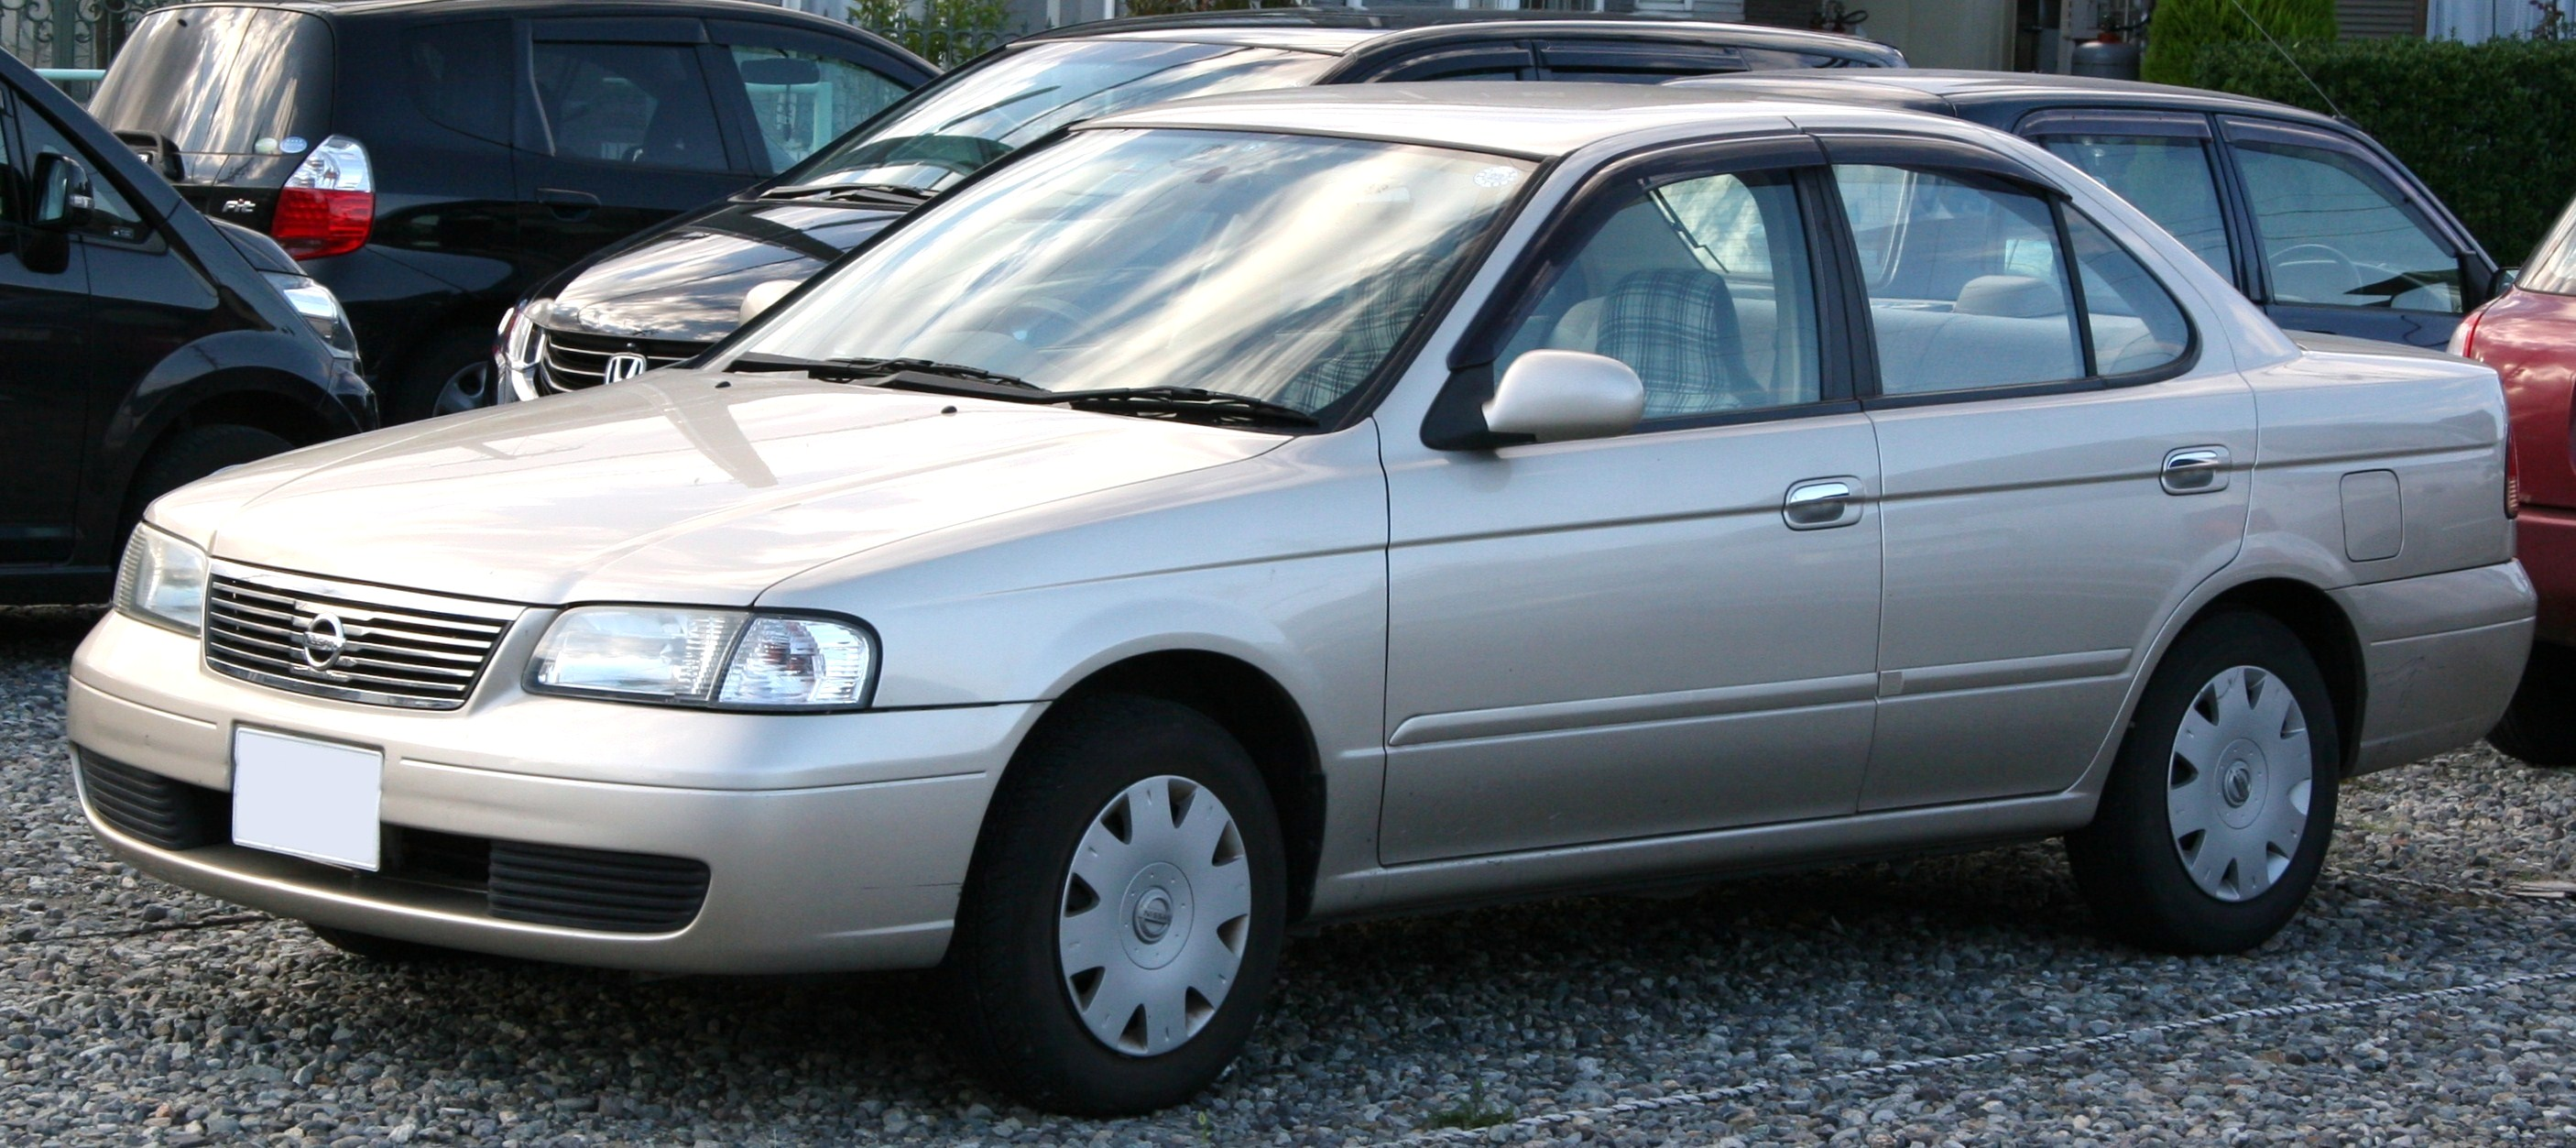 Nissan Sunny Wikipedia More listings are added daily. nissan sunny wikipedia